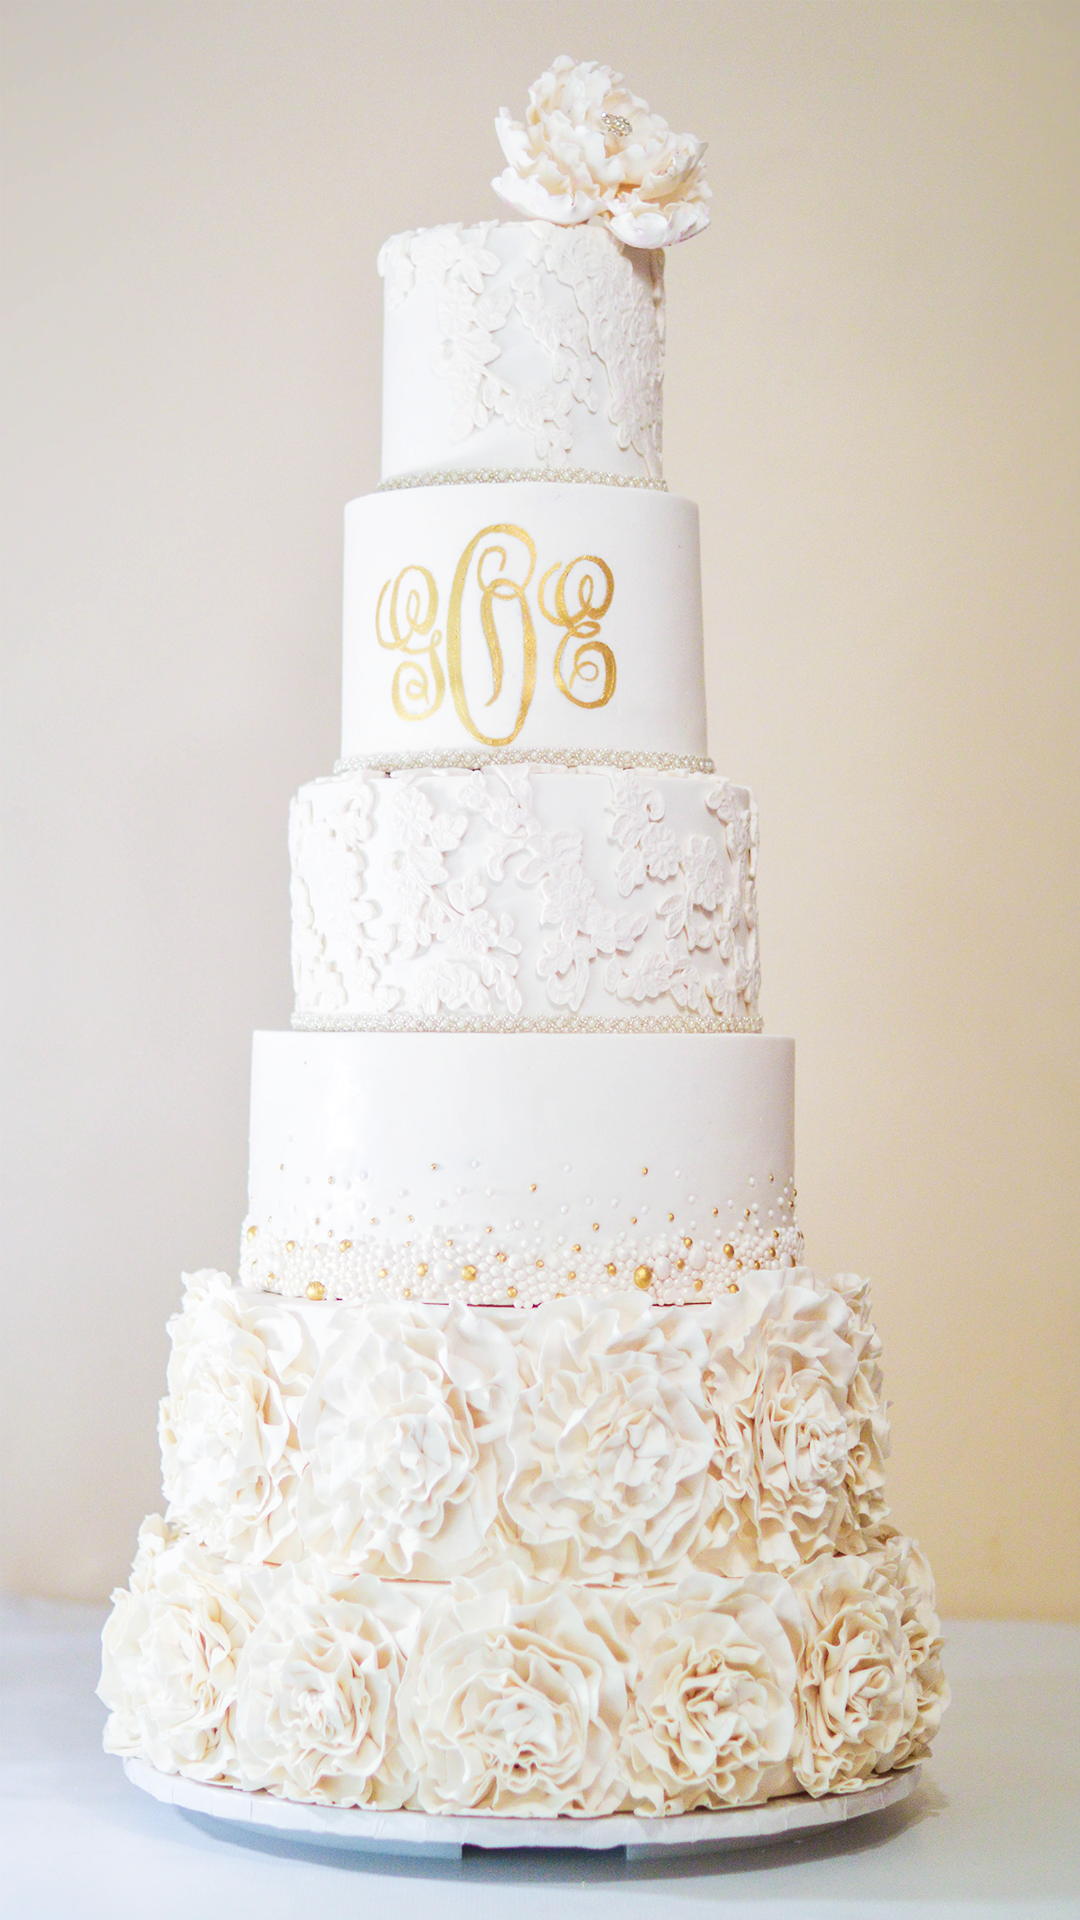 Mad about Monograms! - The cake featured four real tiers and two faux tiers which were adorned with layers of sugar ruffles.